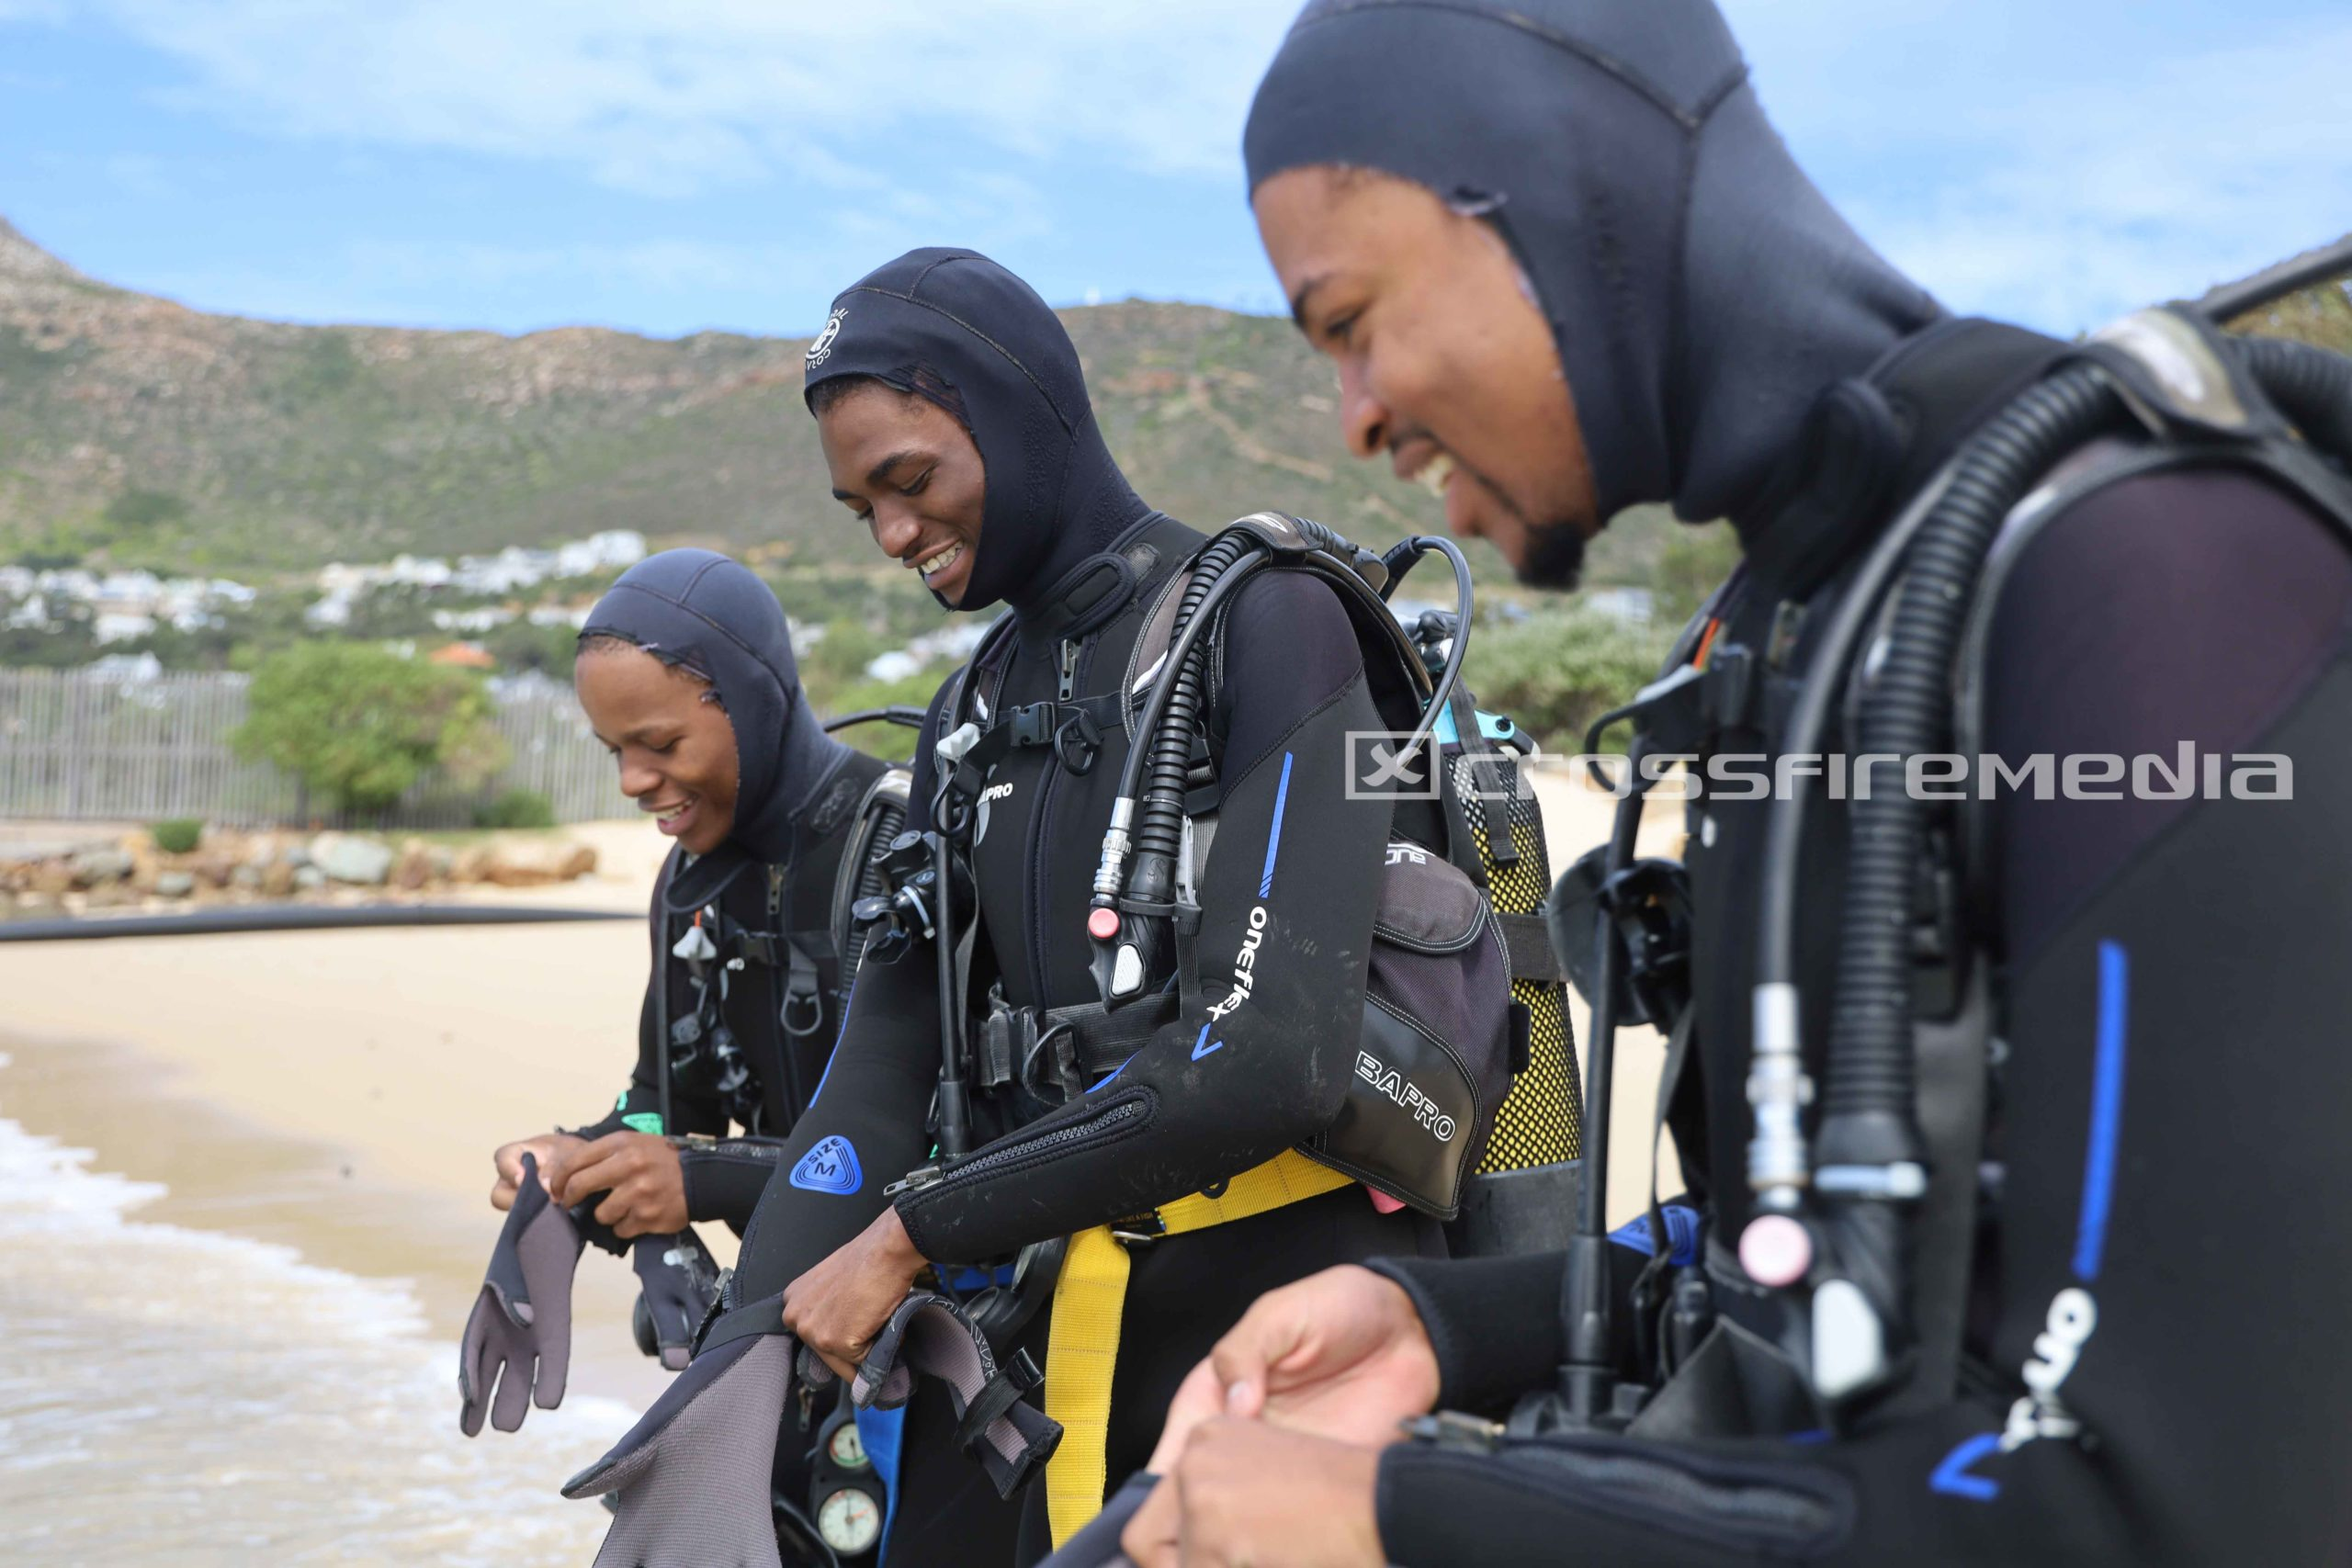 gallery images of young male scuba divers in scuba gear